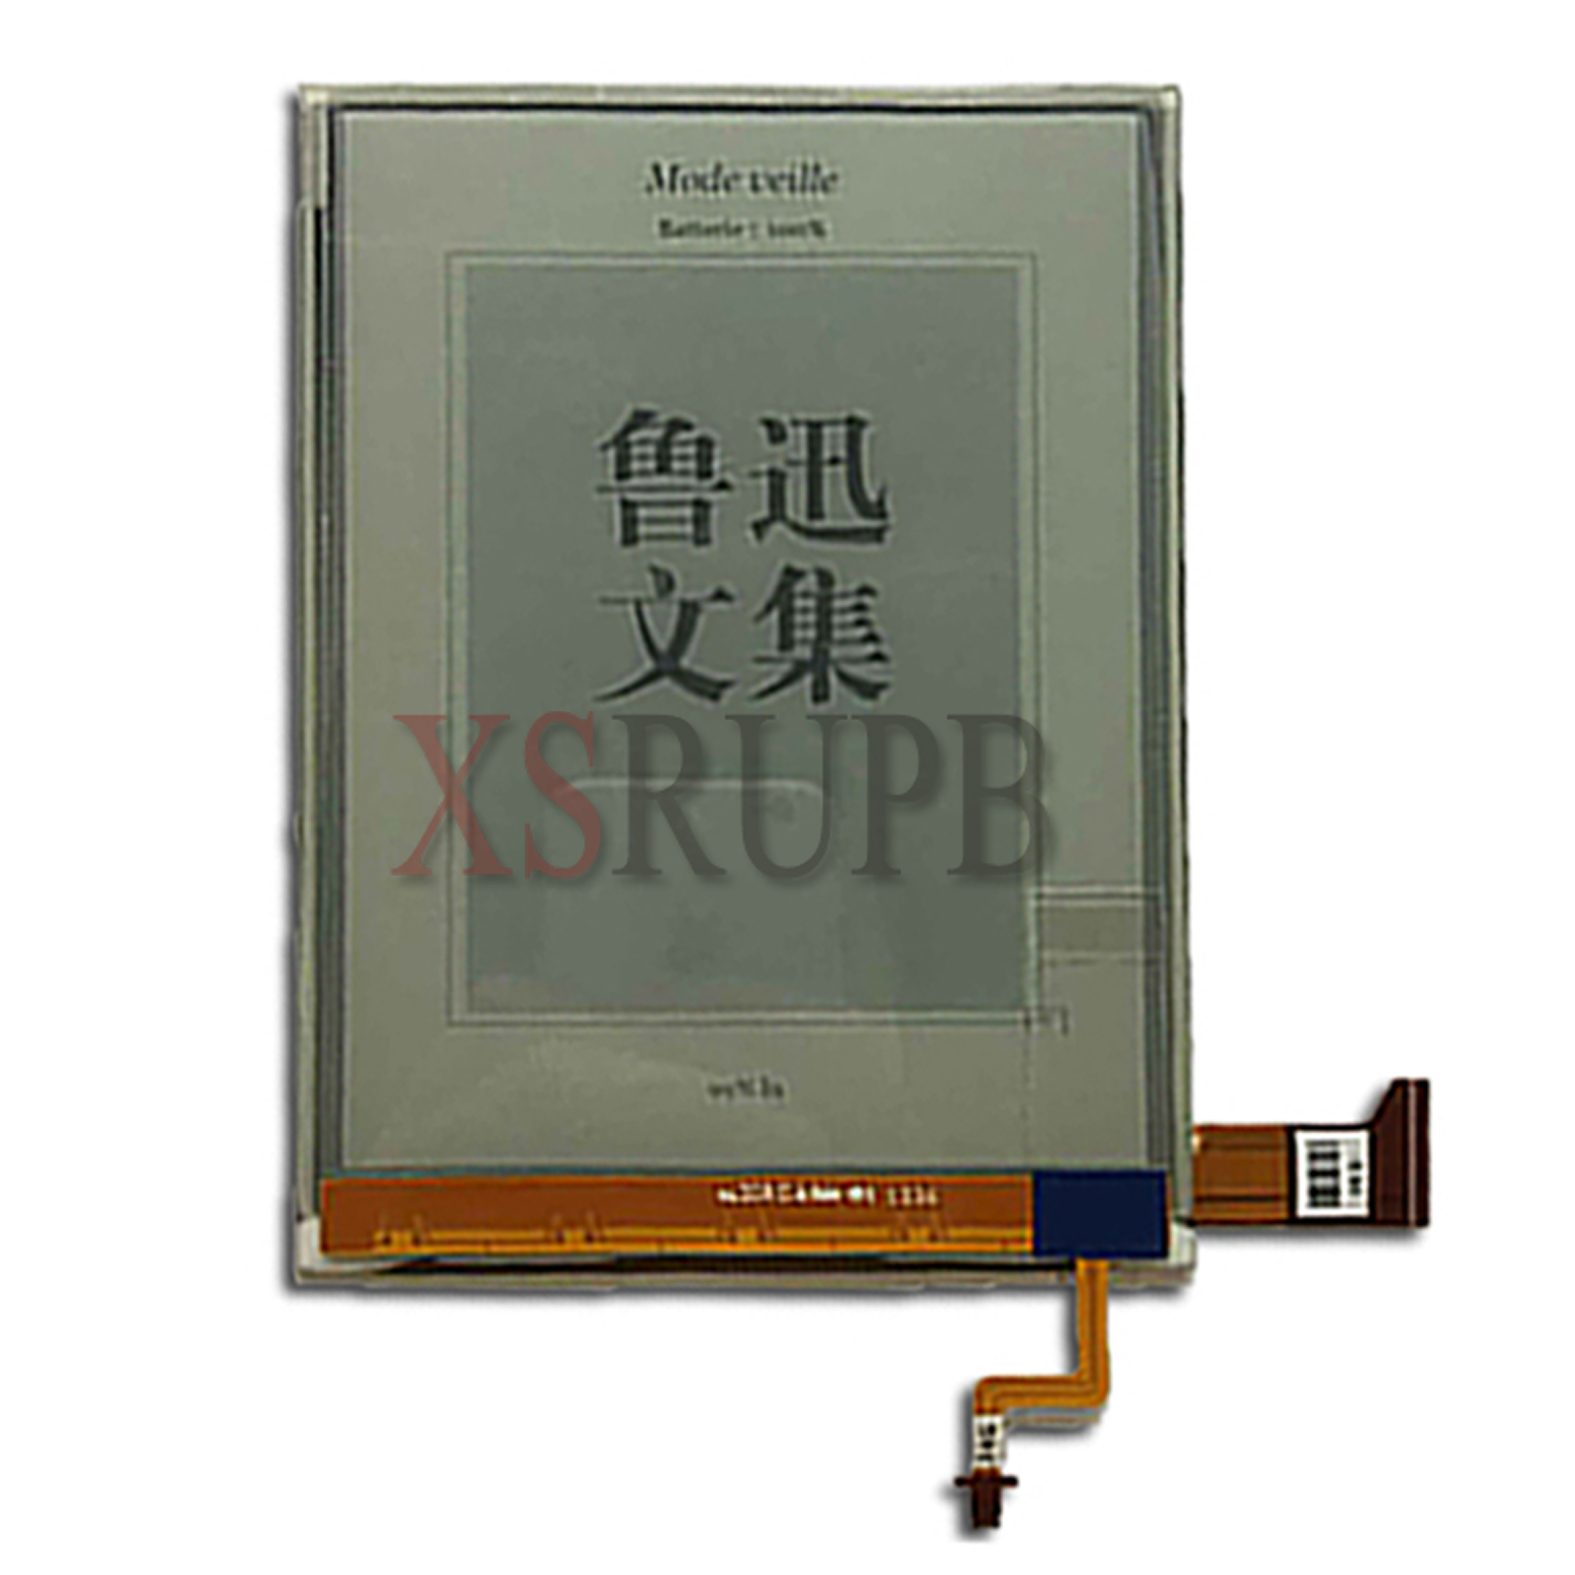 все цены на NEW Original E Ink Pearl HD Display for Kobo Glo Model N613 E-book Erader E-Ink LCD Screen Glass Panel Ebook replacement онлайн